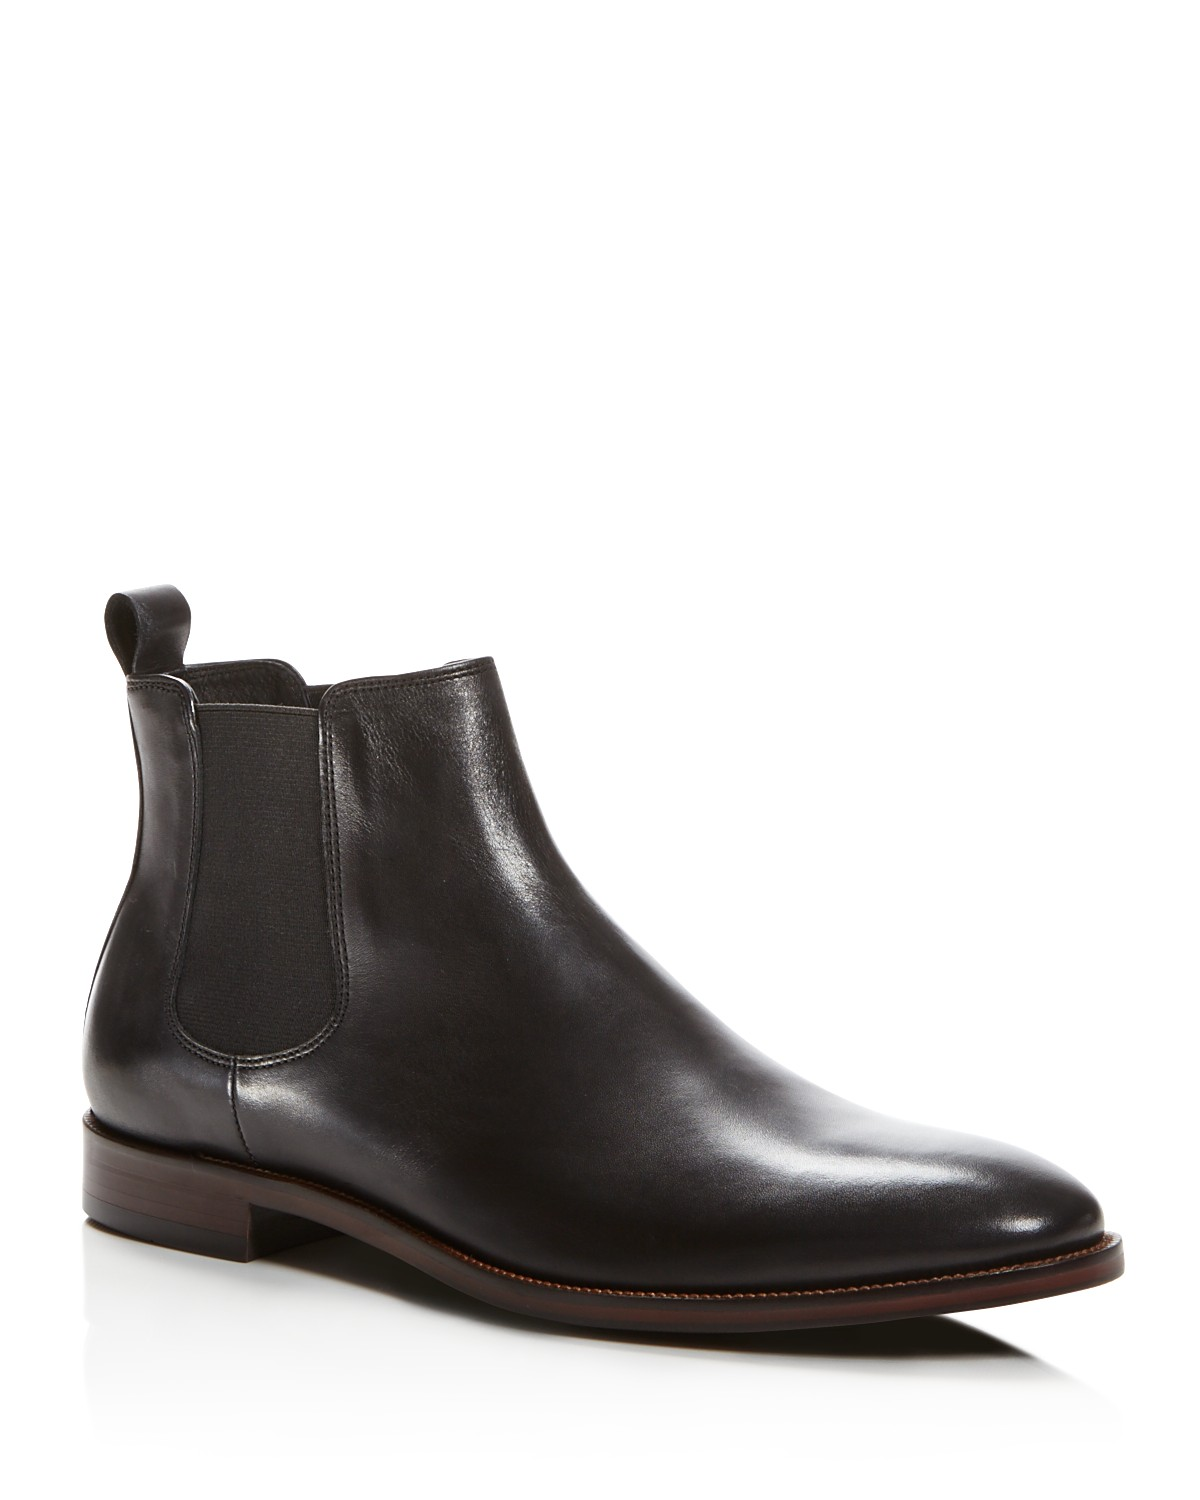 Bloomingdale's Leather Chukka Boots - 100% Exclusive sK0ArruzK